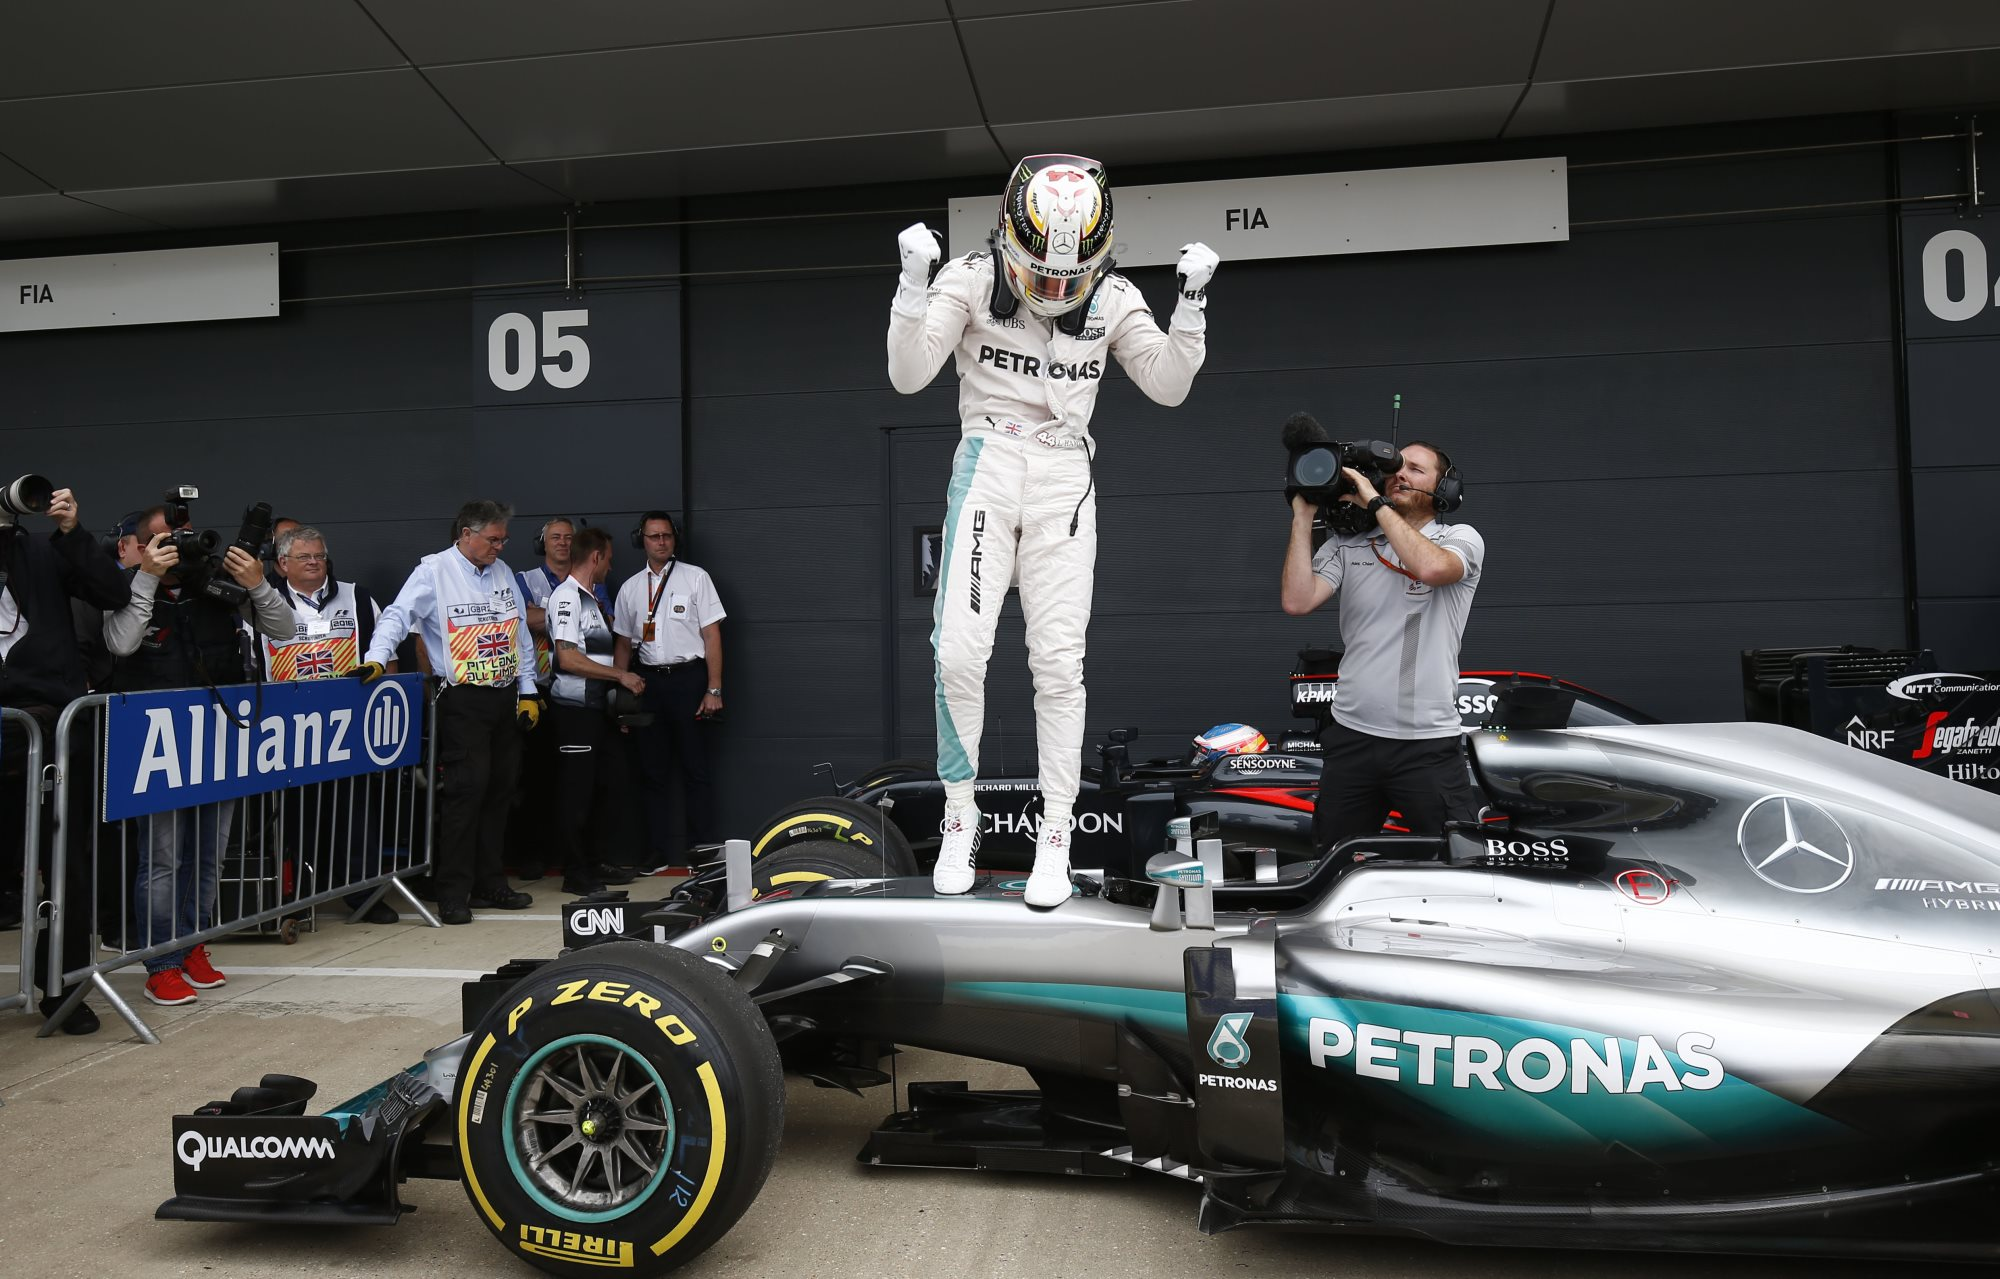 Lewis Hamilton Mercedes F1 W07 Hybrid Great Britain GP celebrates pole on car Silverstone F1 2016 Foto Daimler